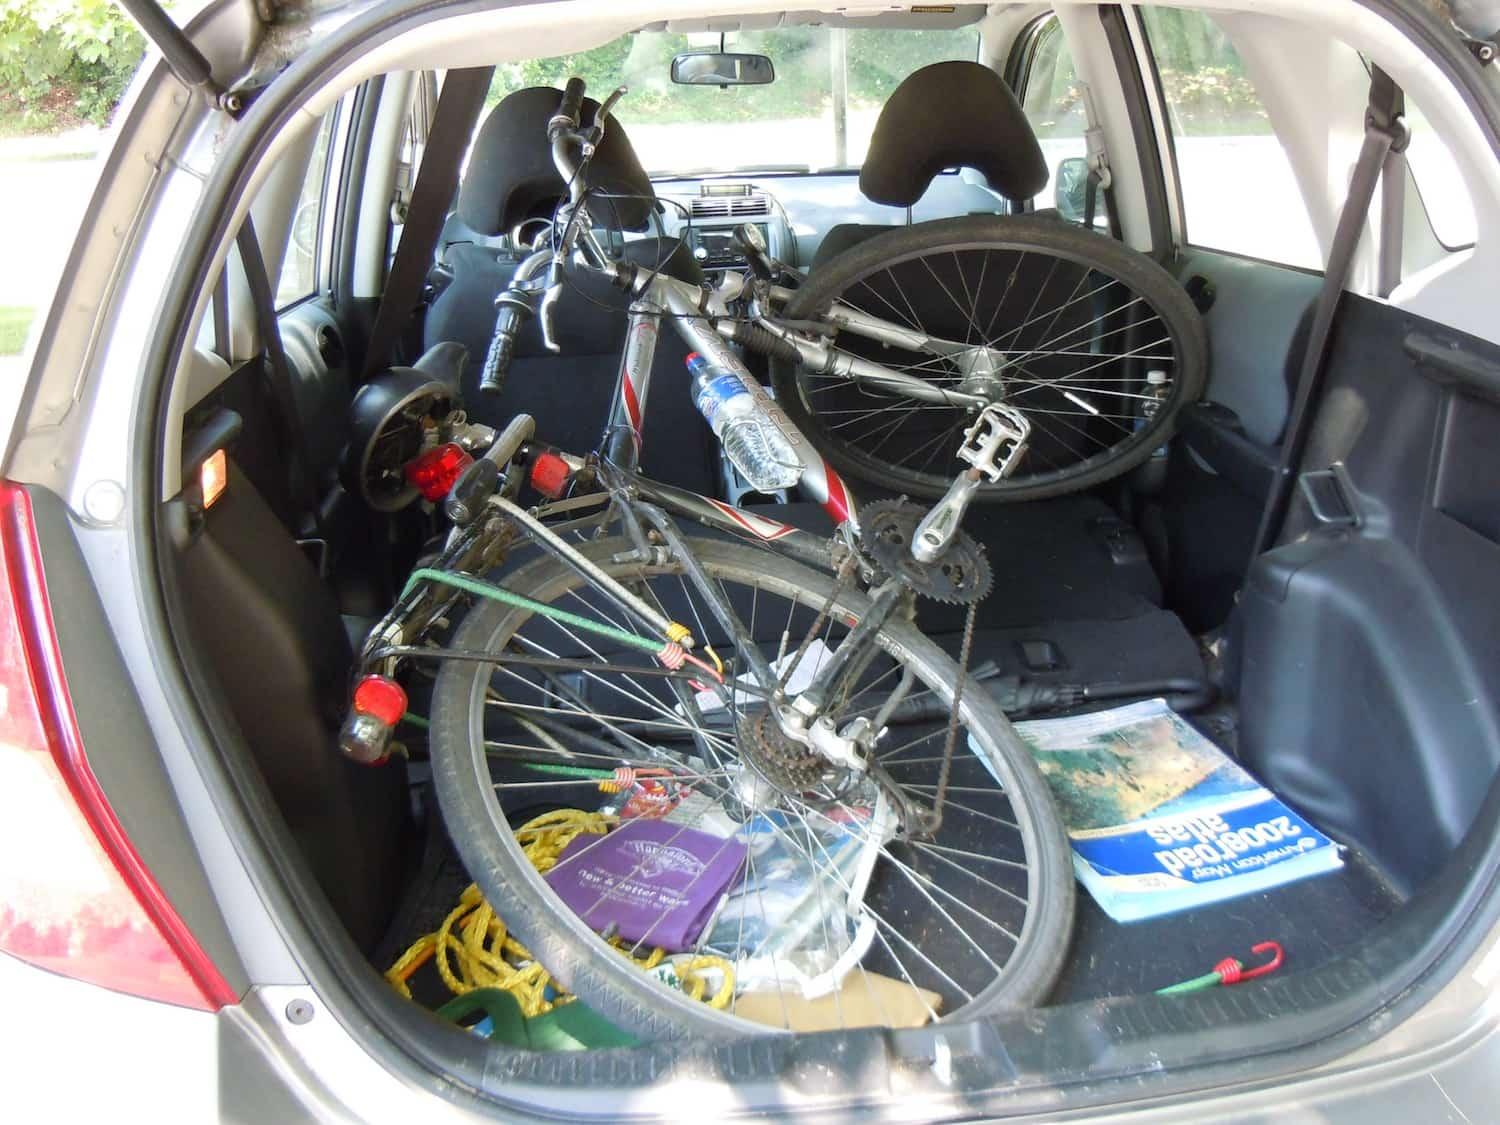 Transport Bike By Car - Bike in Boot of Hatchback